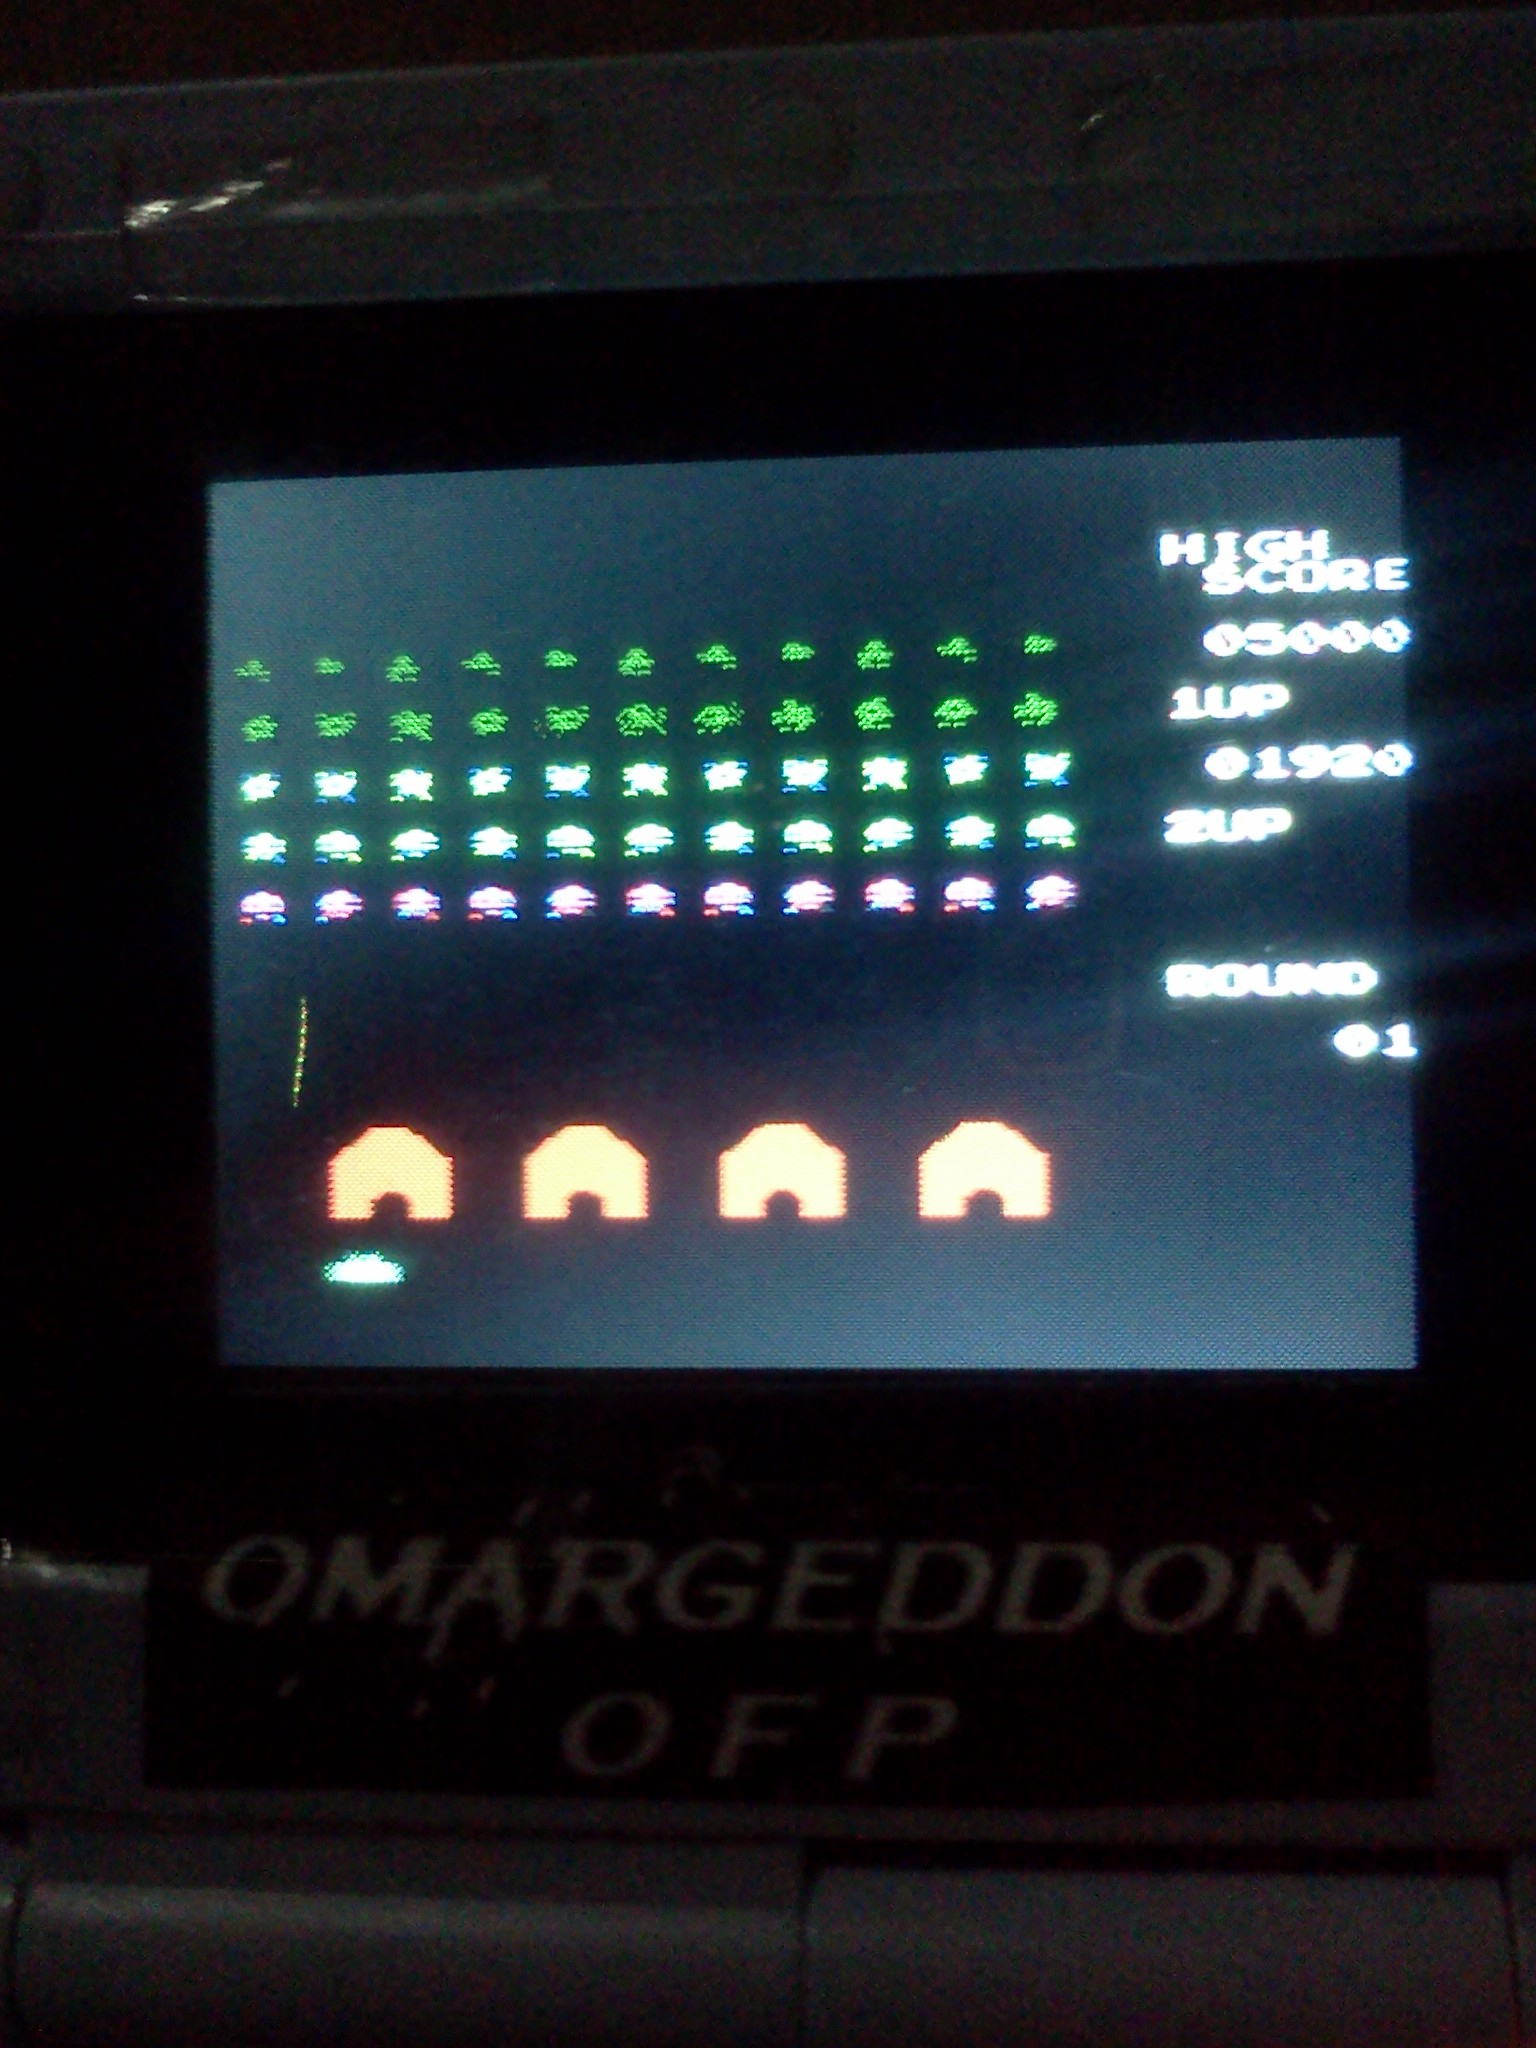 omargeddon: Space Invaders (NES/Famicom Emulated) 1,920 points on 2016-08-07 22:21:21